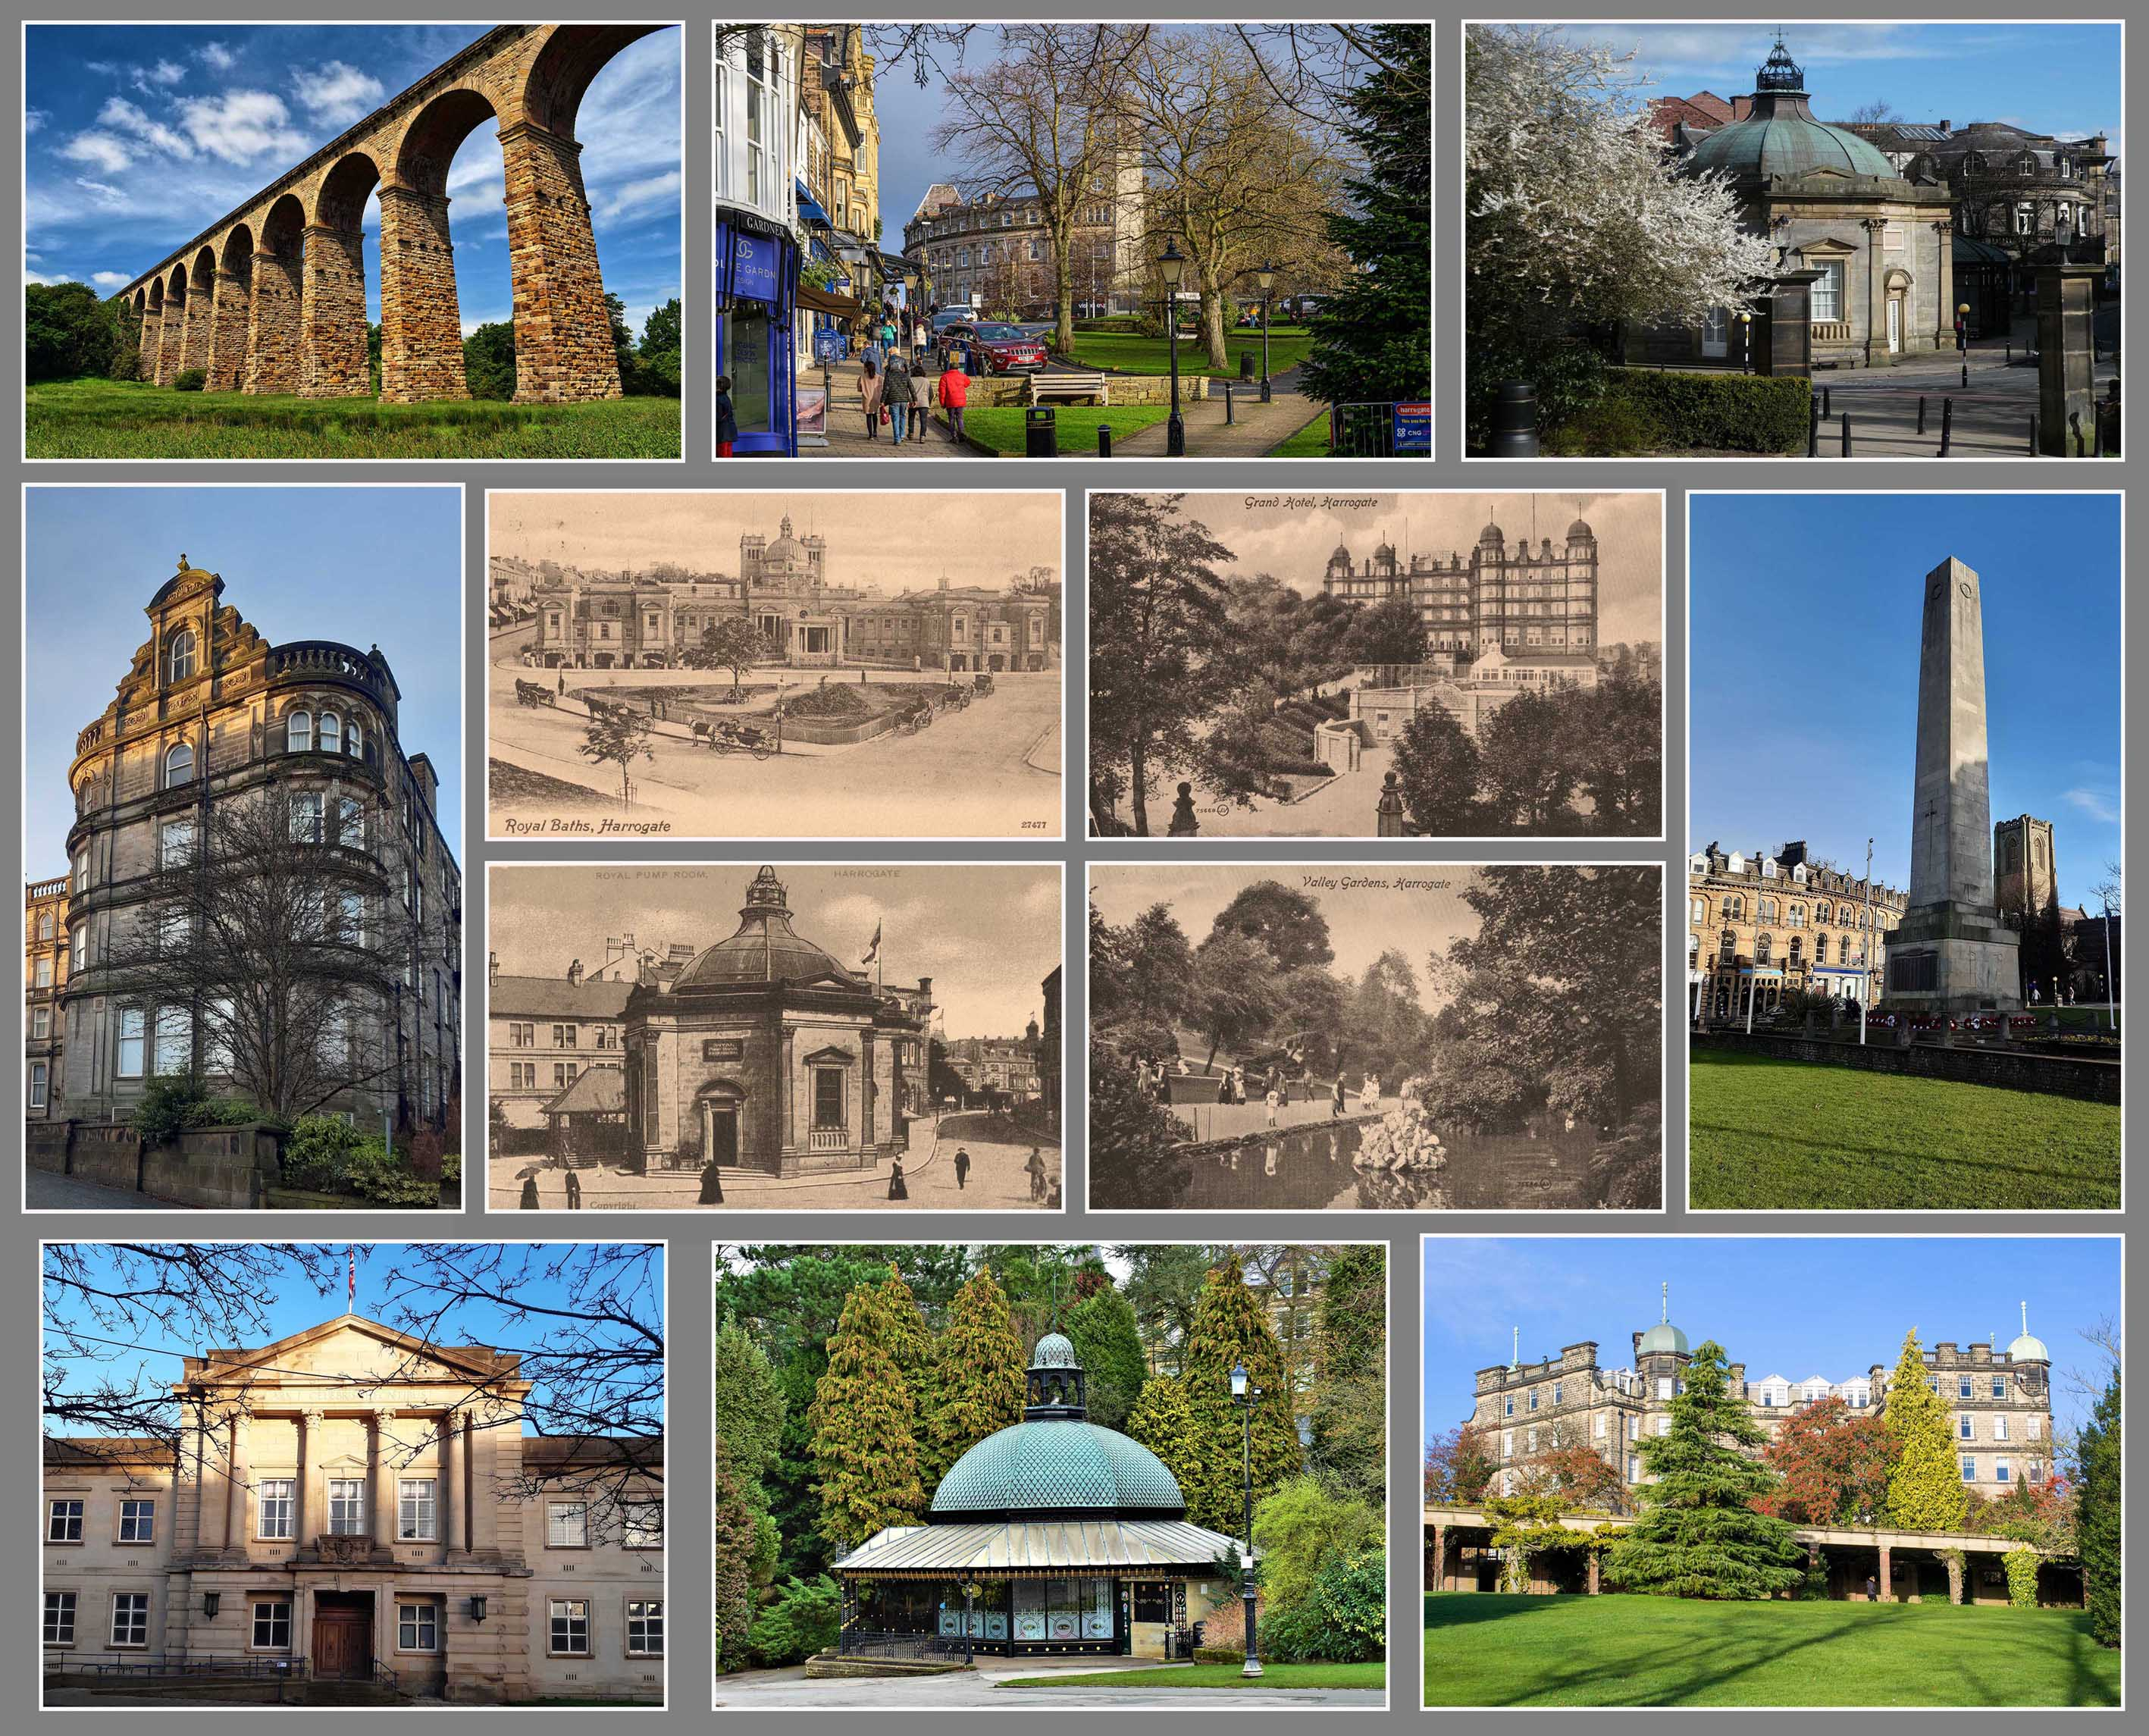 Postcards from Harrogate – Old and New